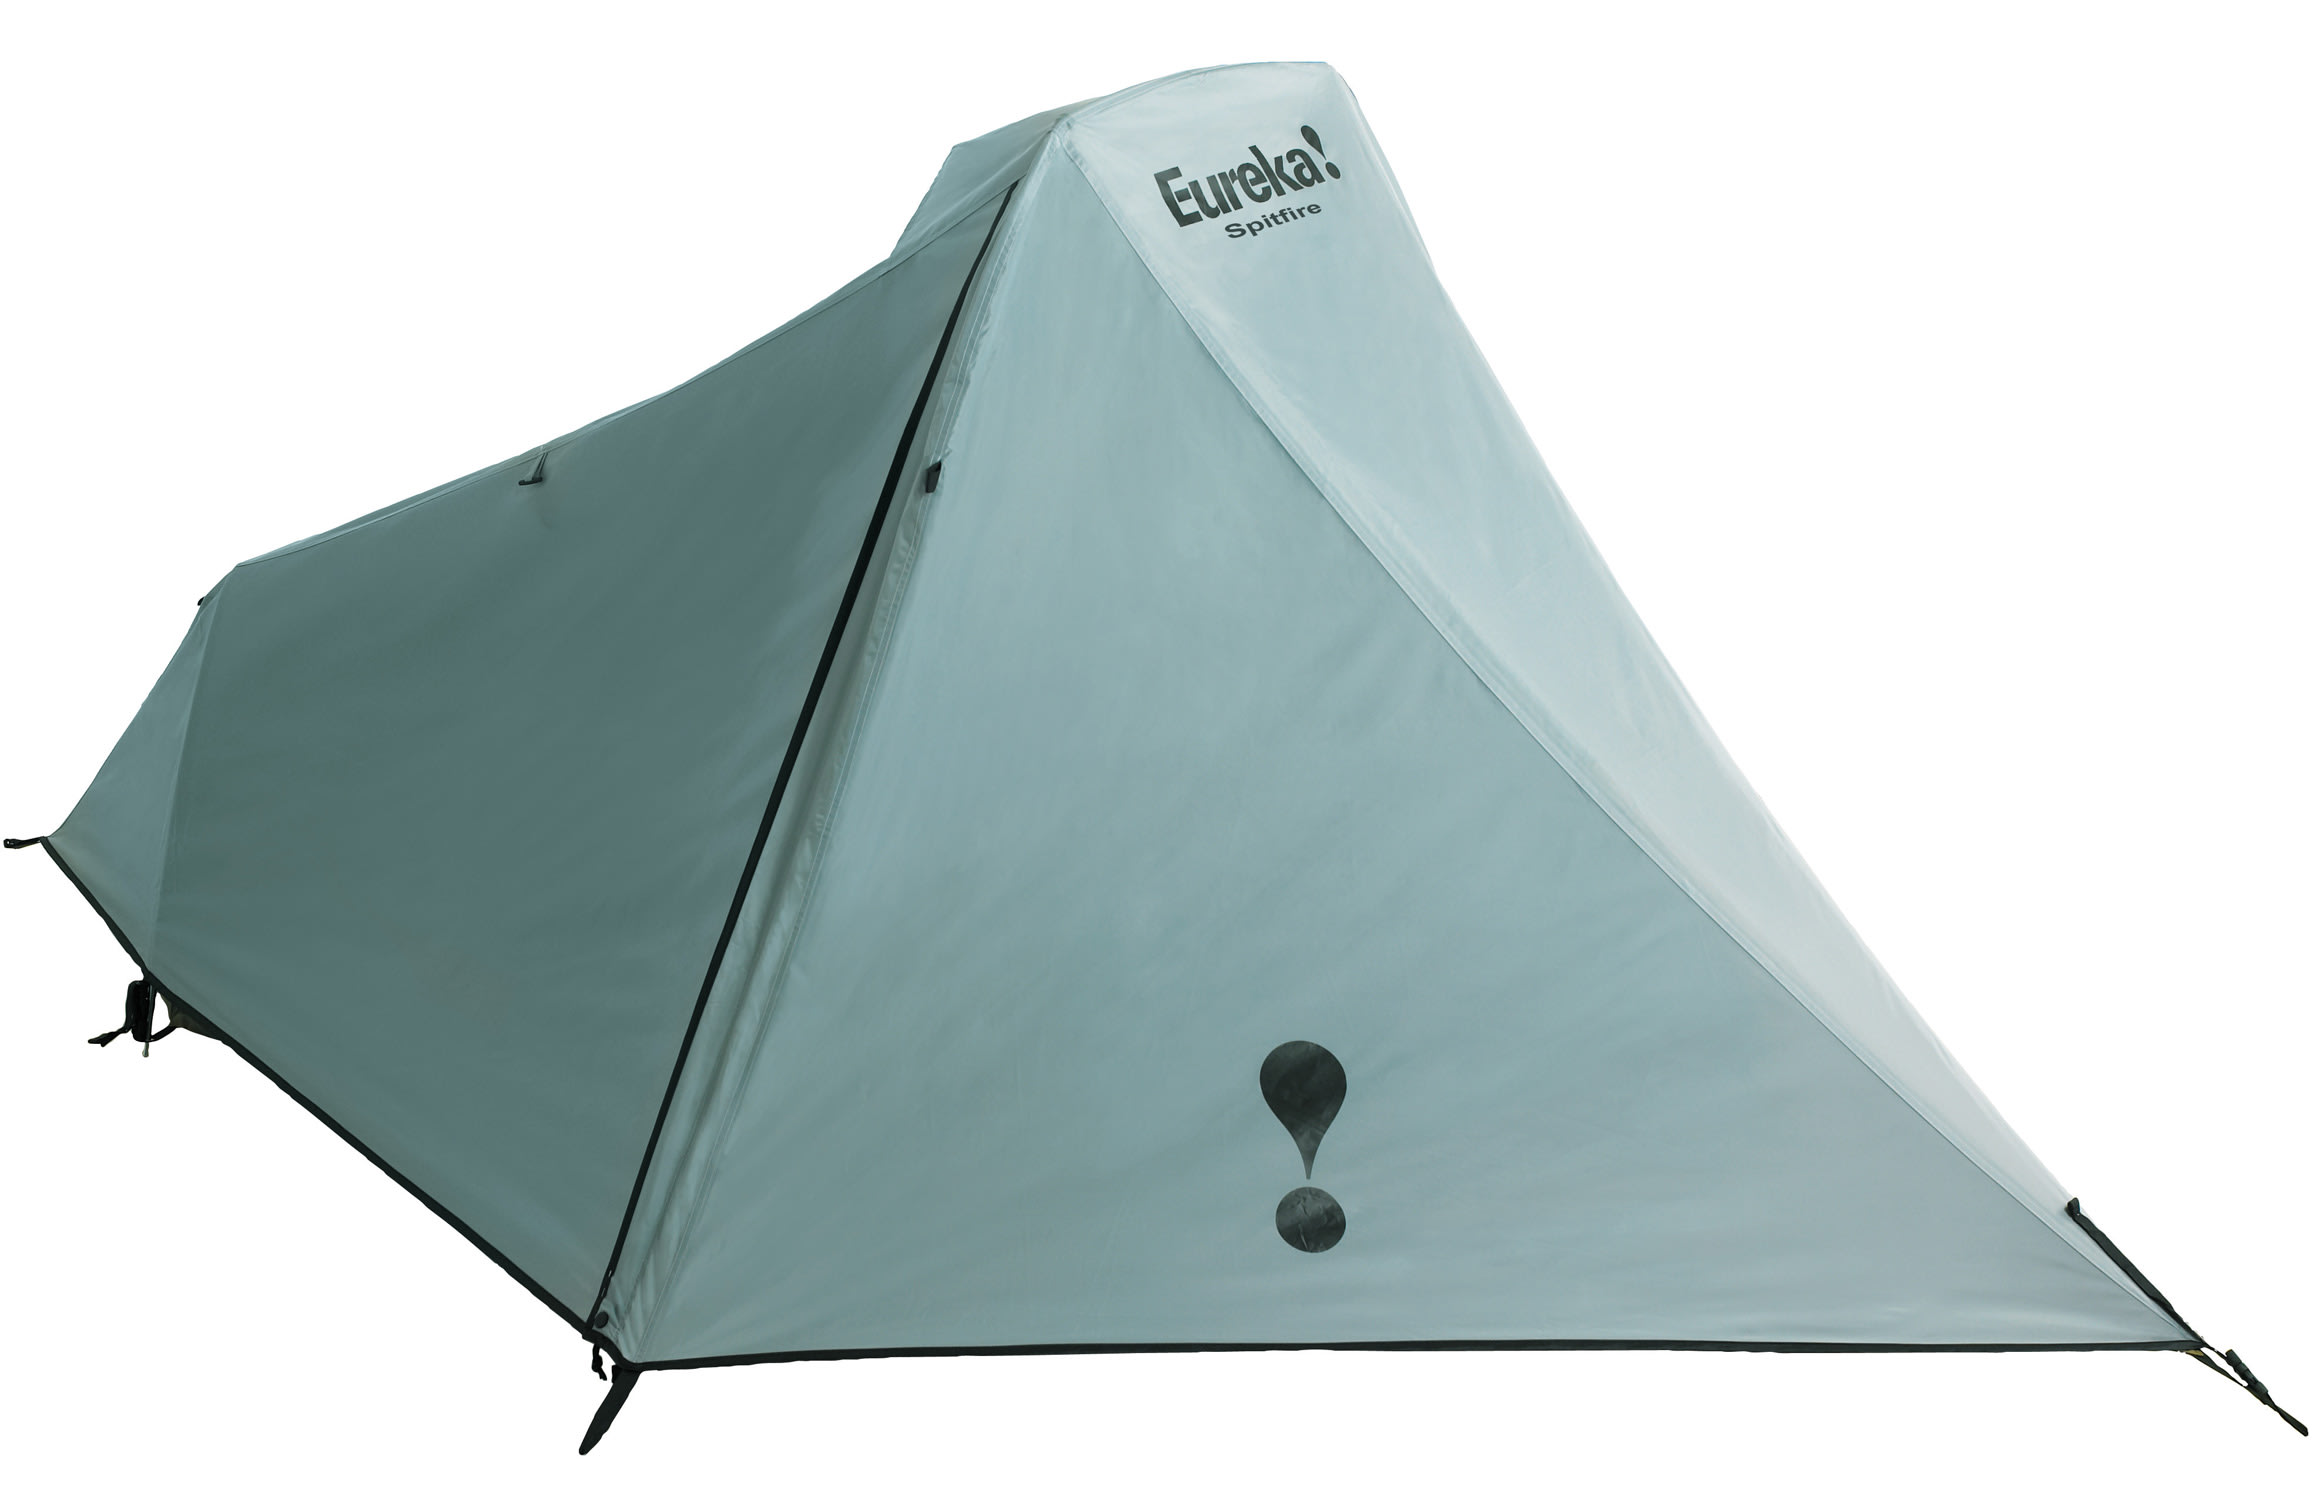 Eureka Spitfire 1 Person Tent - thumbnail 1  sc 1 st  The House & On Sale Eureka Spitfire 1 Person Tent up to 60% off